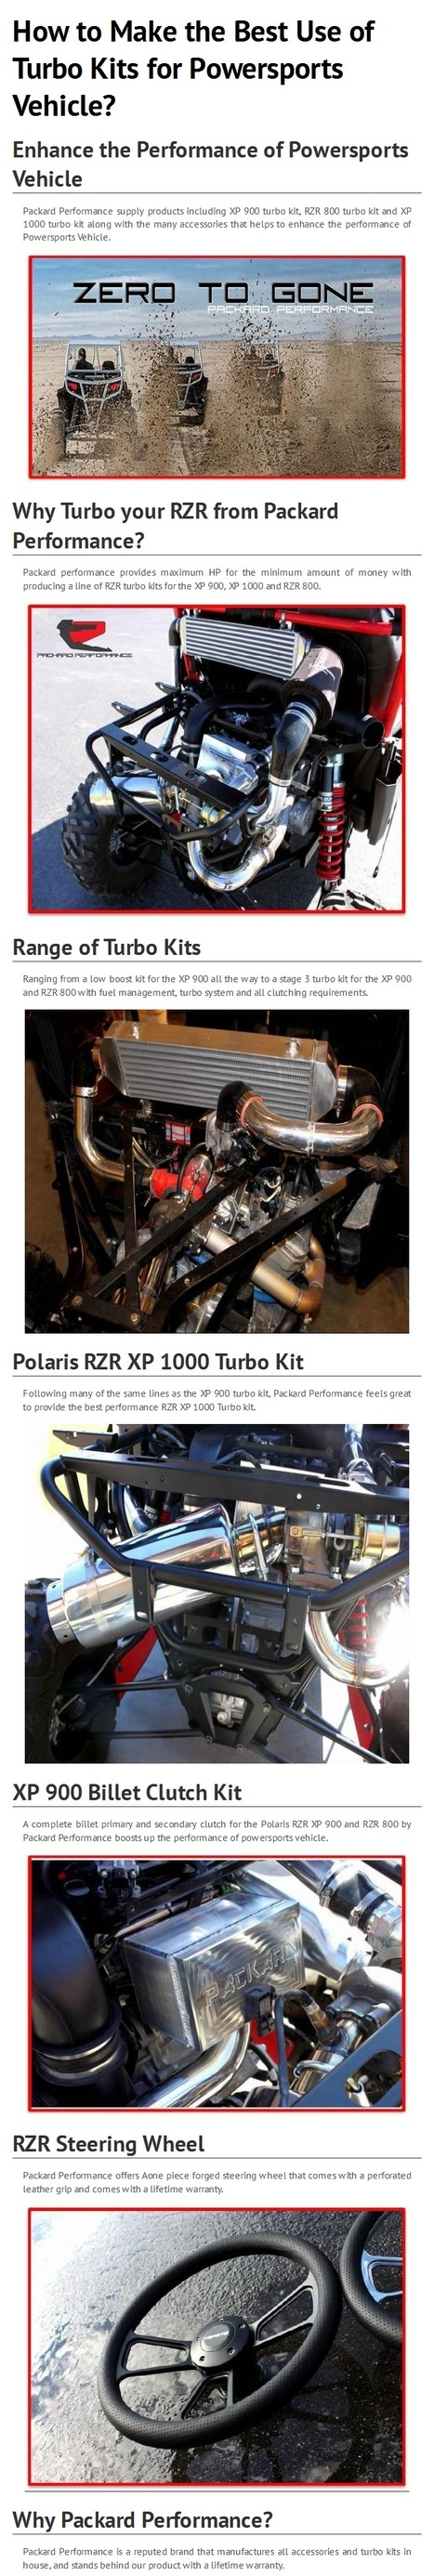 Maintain Your Power Sports Accessories with Zero Maintenance By www.packardperformance.com | Packard Performance | Scoop.it